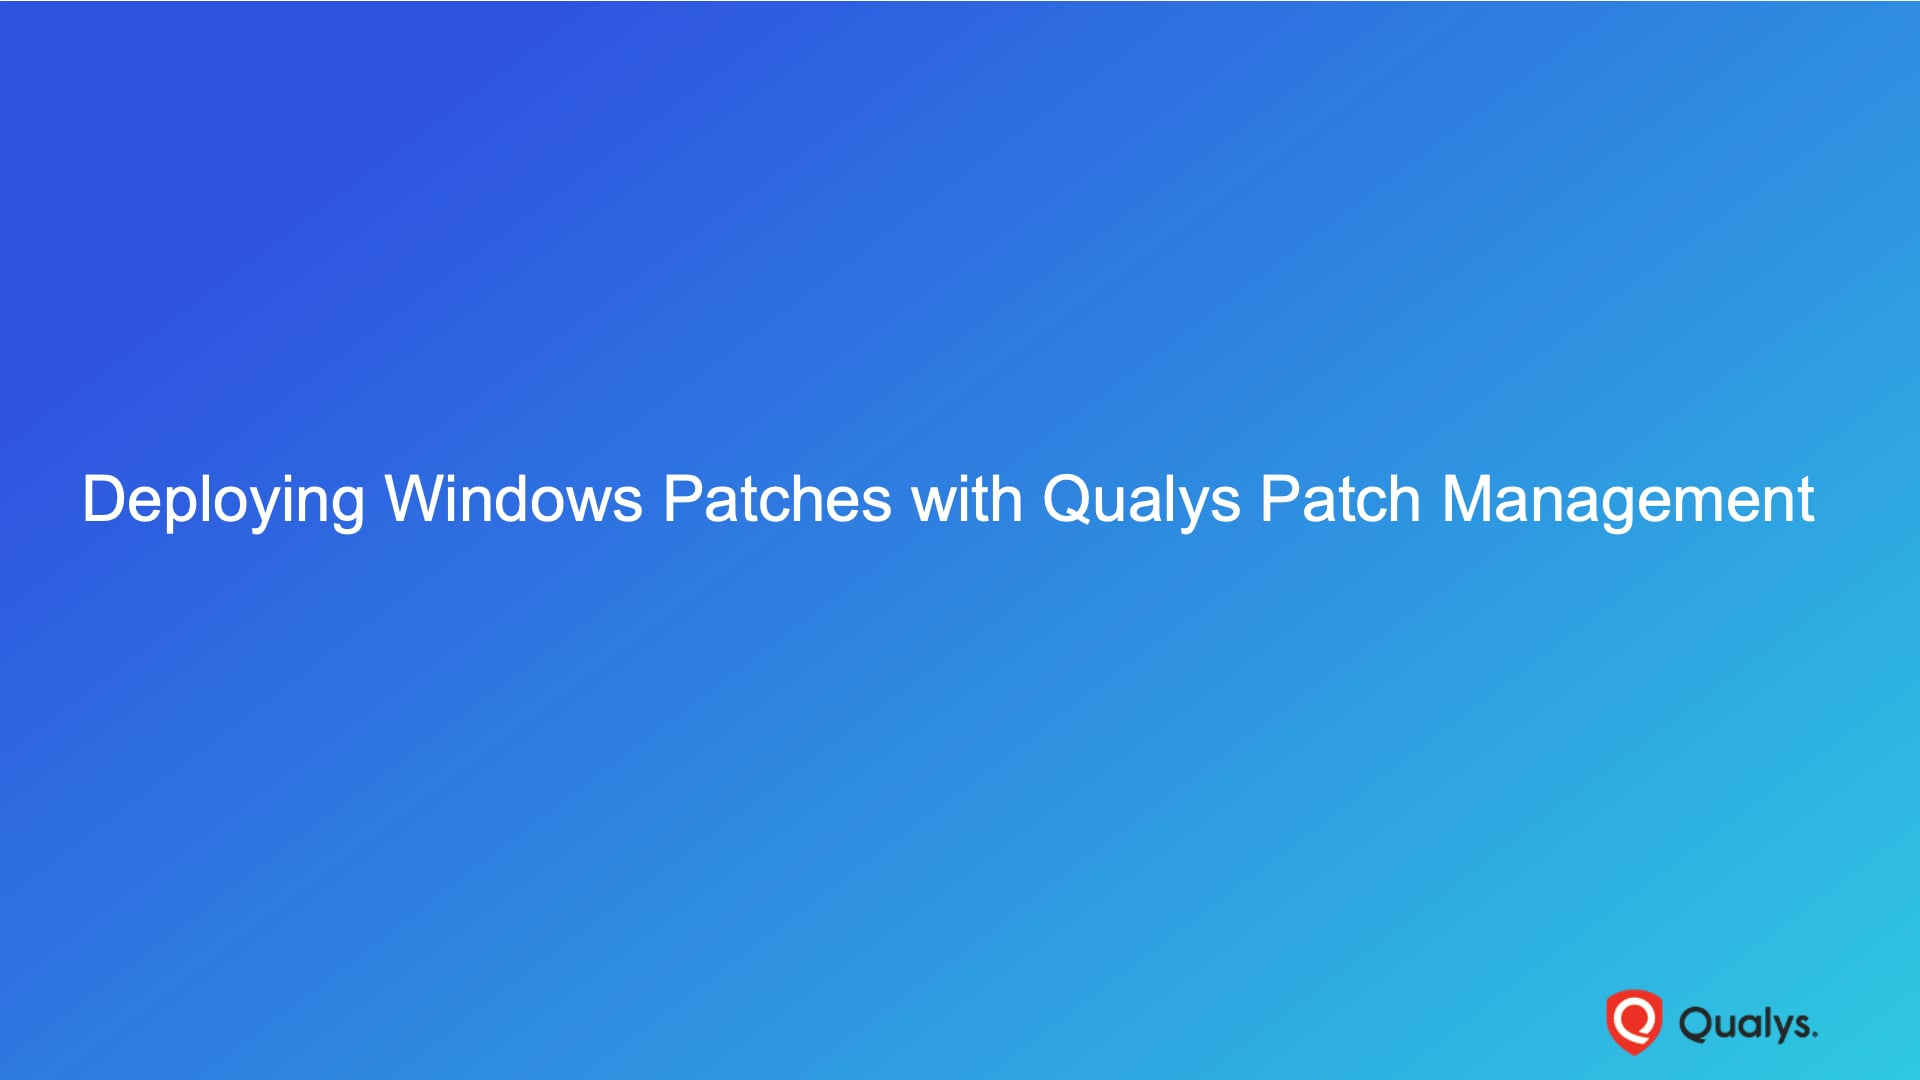 Deploying Windows Patches with Qualys Patch Management